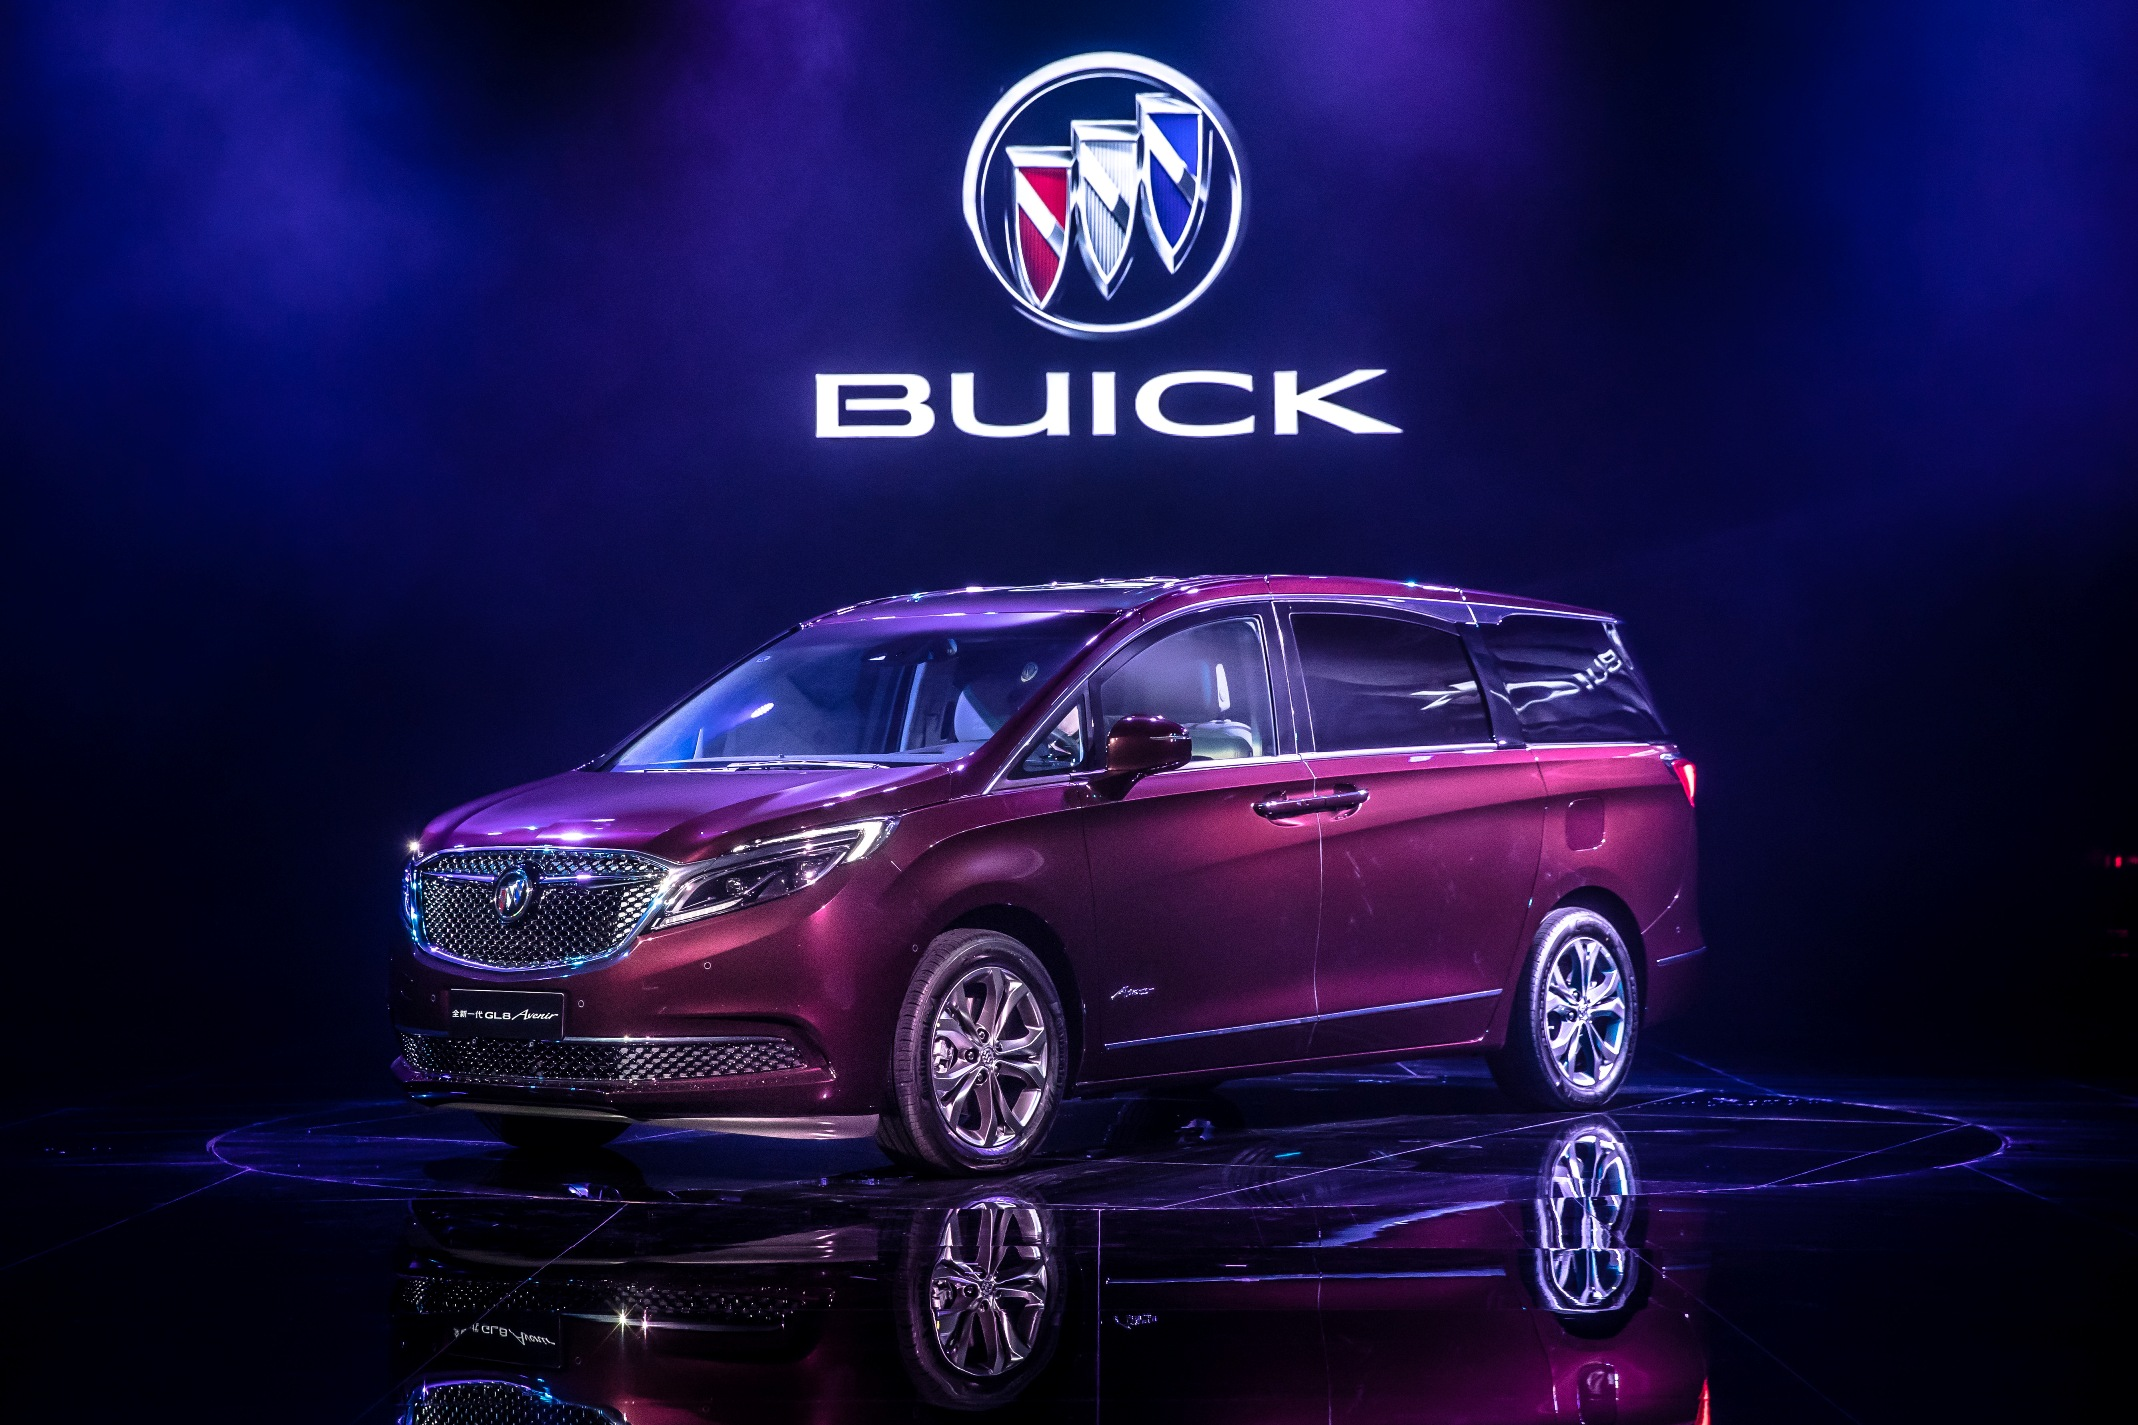 buick launches new generation gl8 and gl8 avenir mpv for china rh media gm com 2015 Buick GL8 2018 Buick GL8 Interior